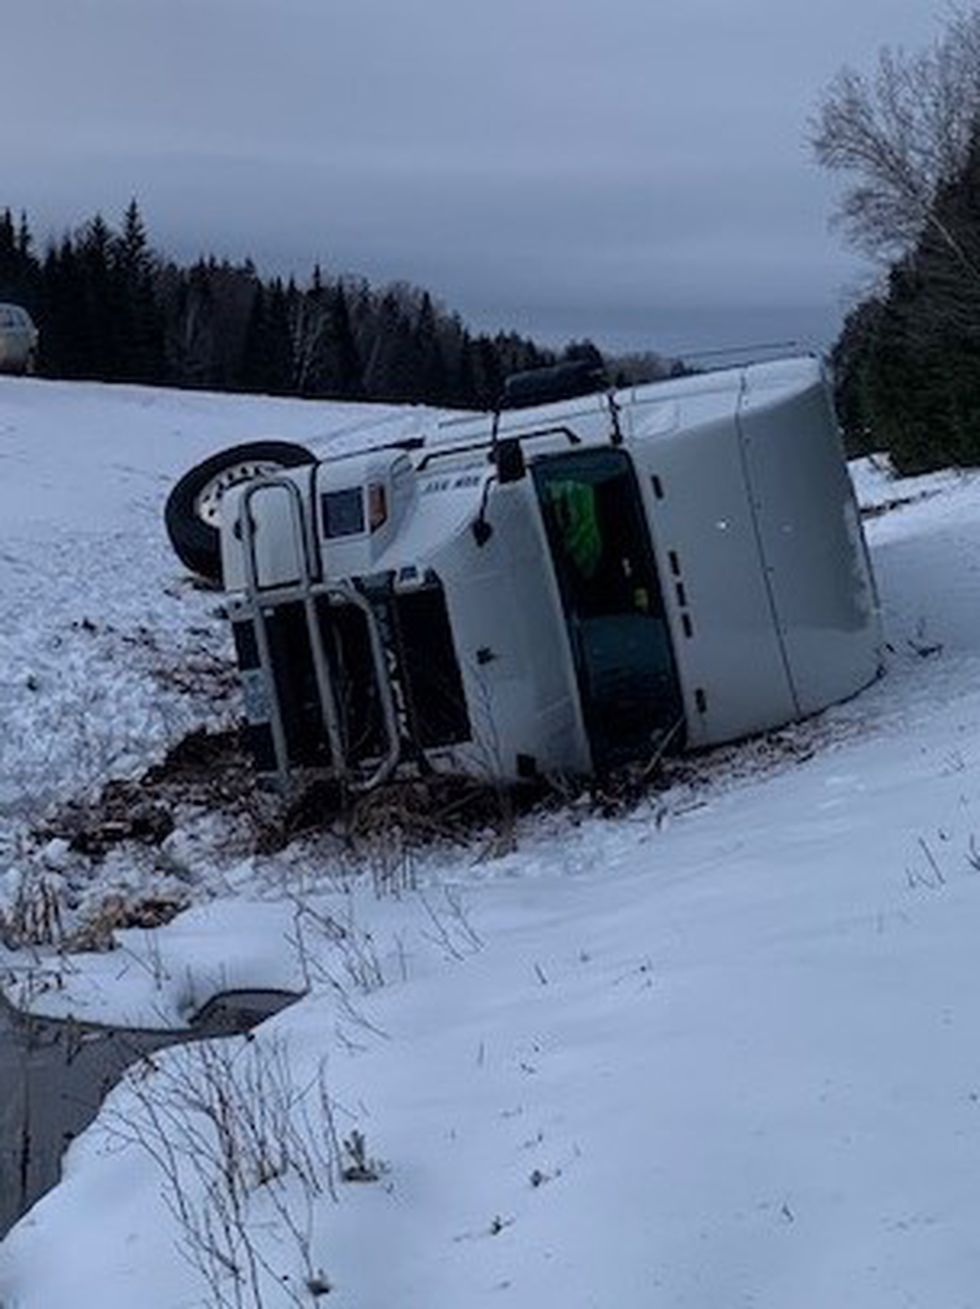 Truck driver from Buxton drifted off interstate in Dyer Brook early this morning